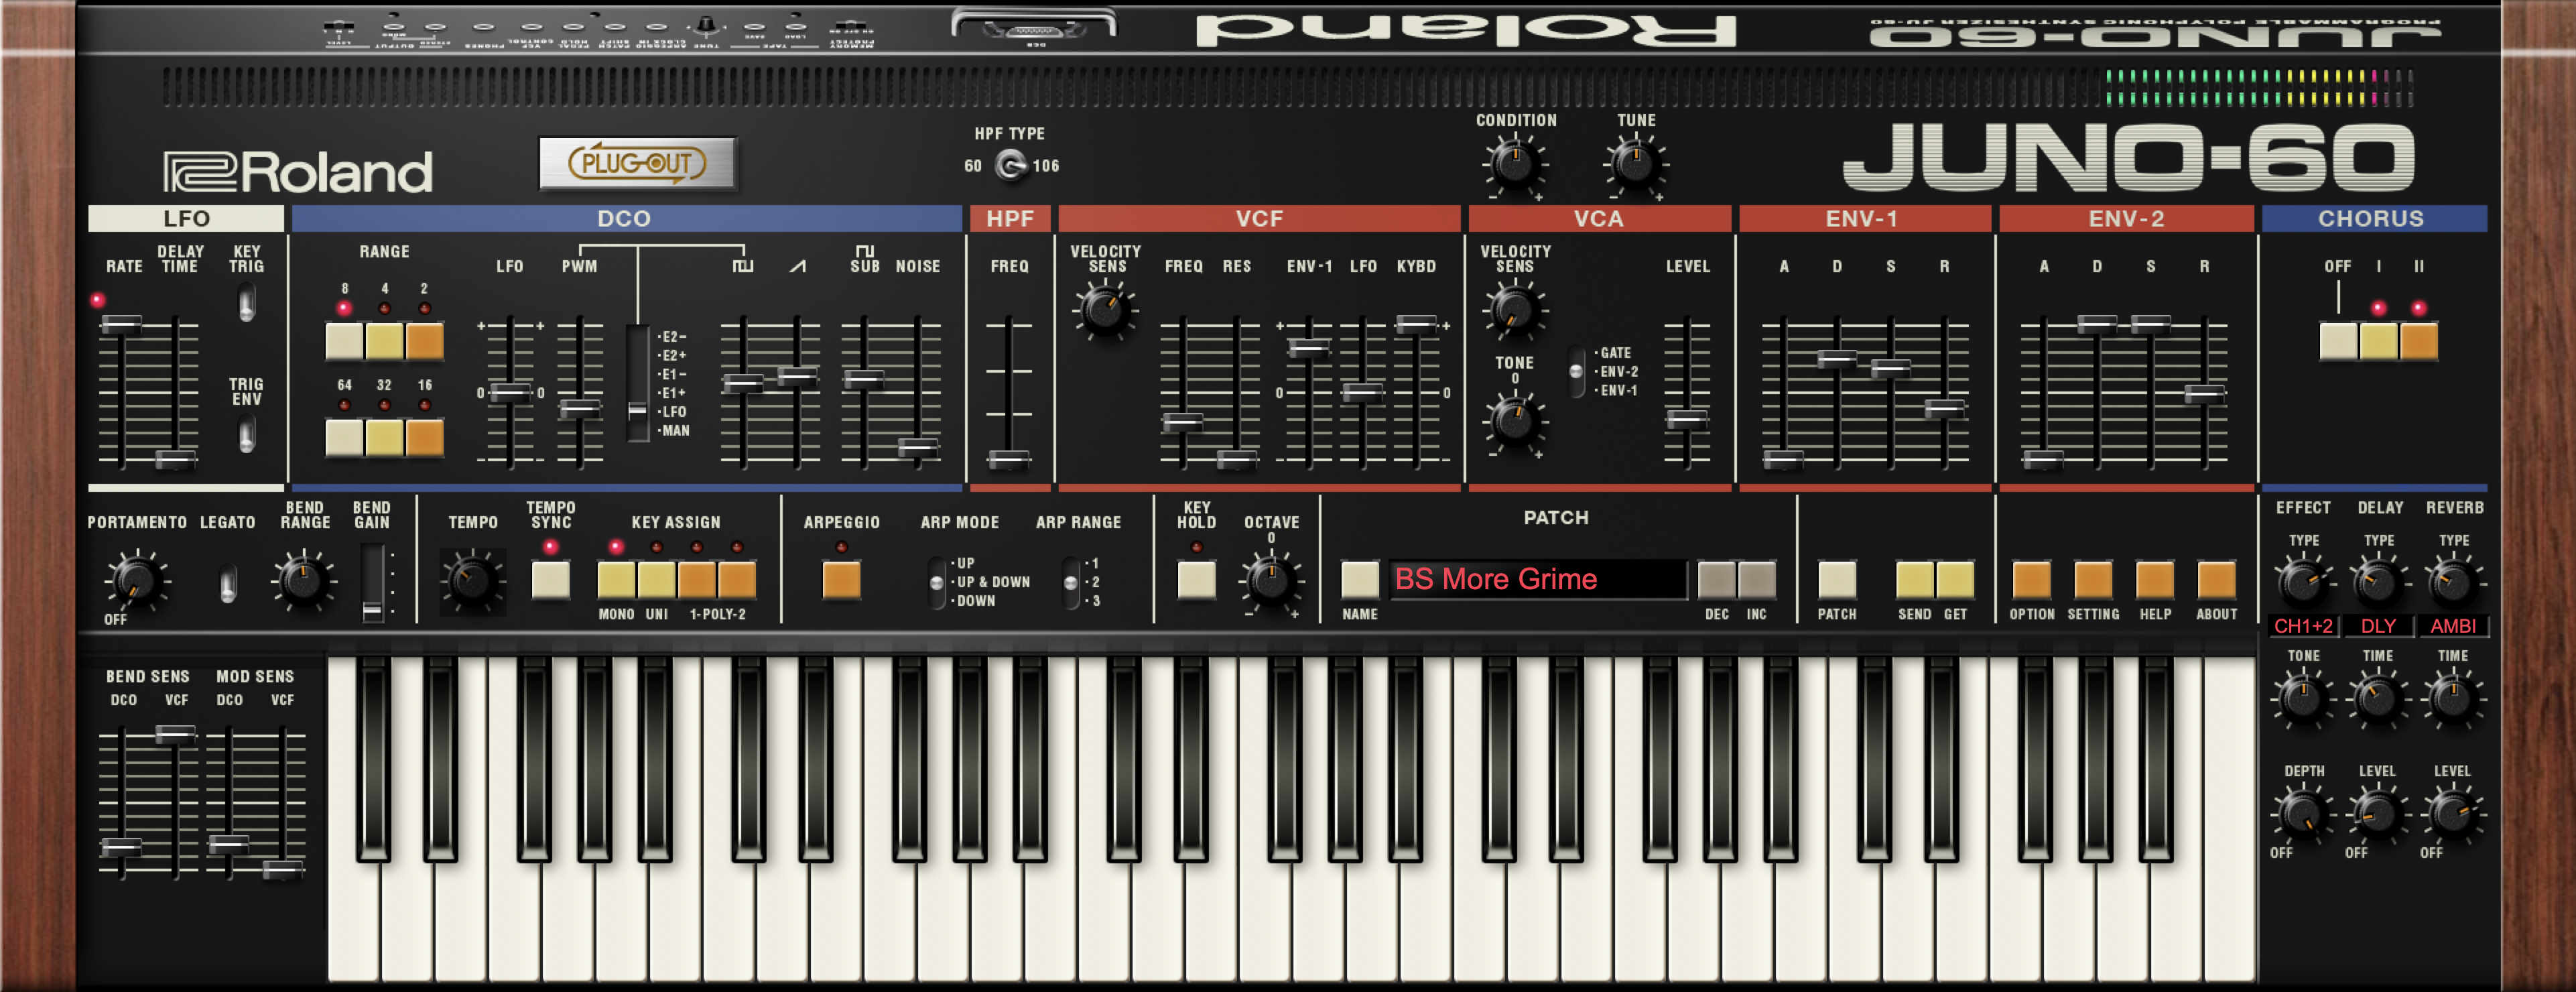 Roland Juno 60 Software Synthesizer